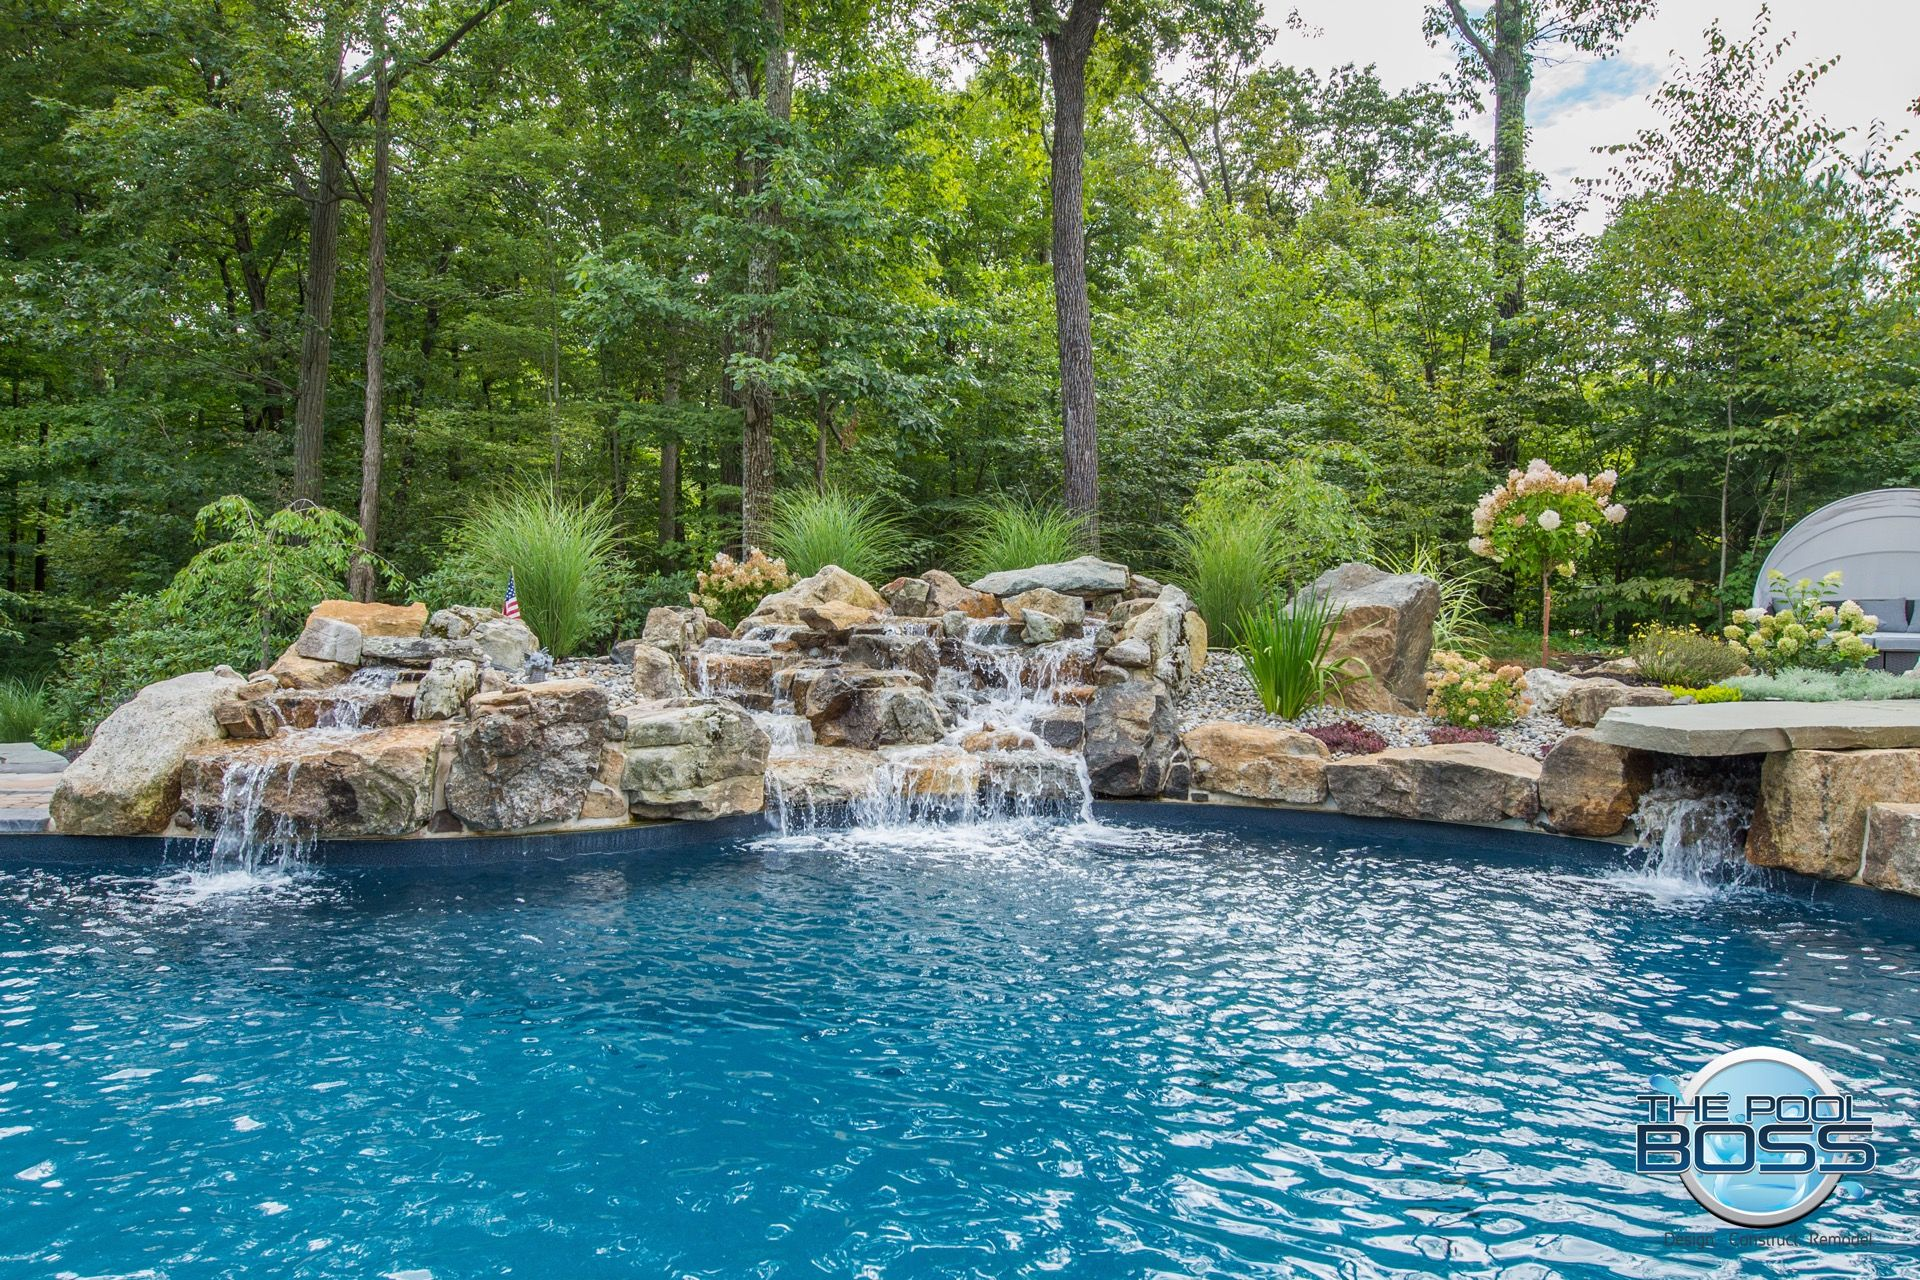 Sparta, NJ - The Pool Boss   NJ's #1 In Ground Swimming ... on Sparta Outdoor Living id=53500